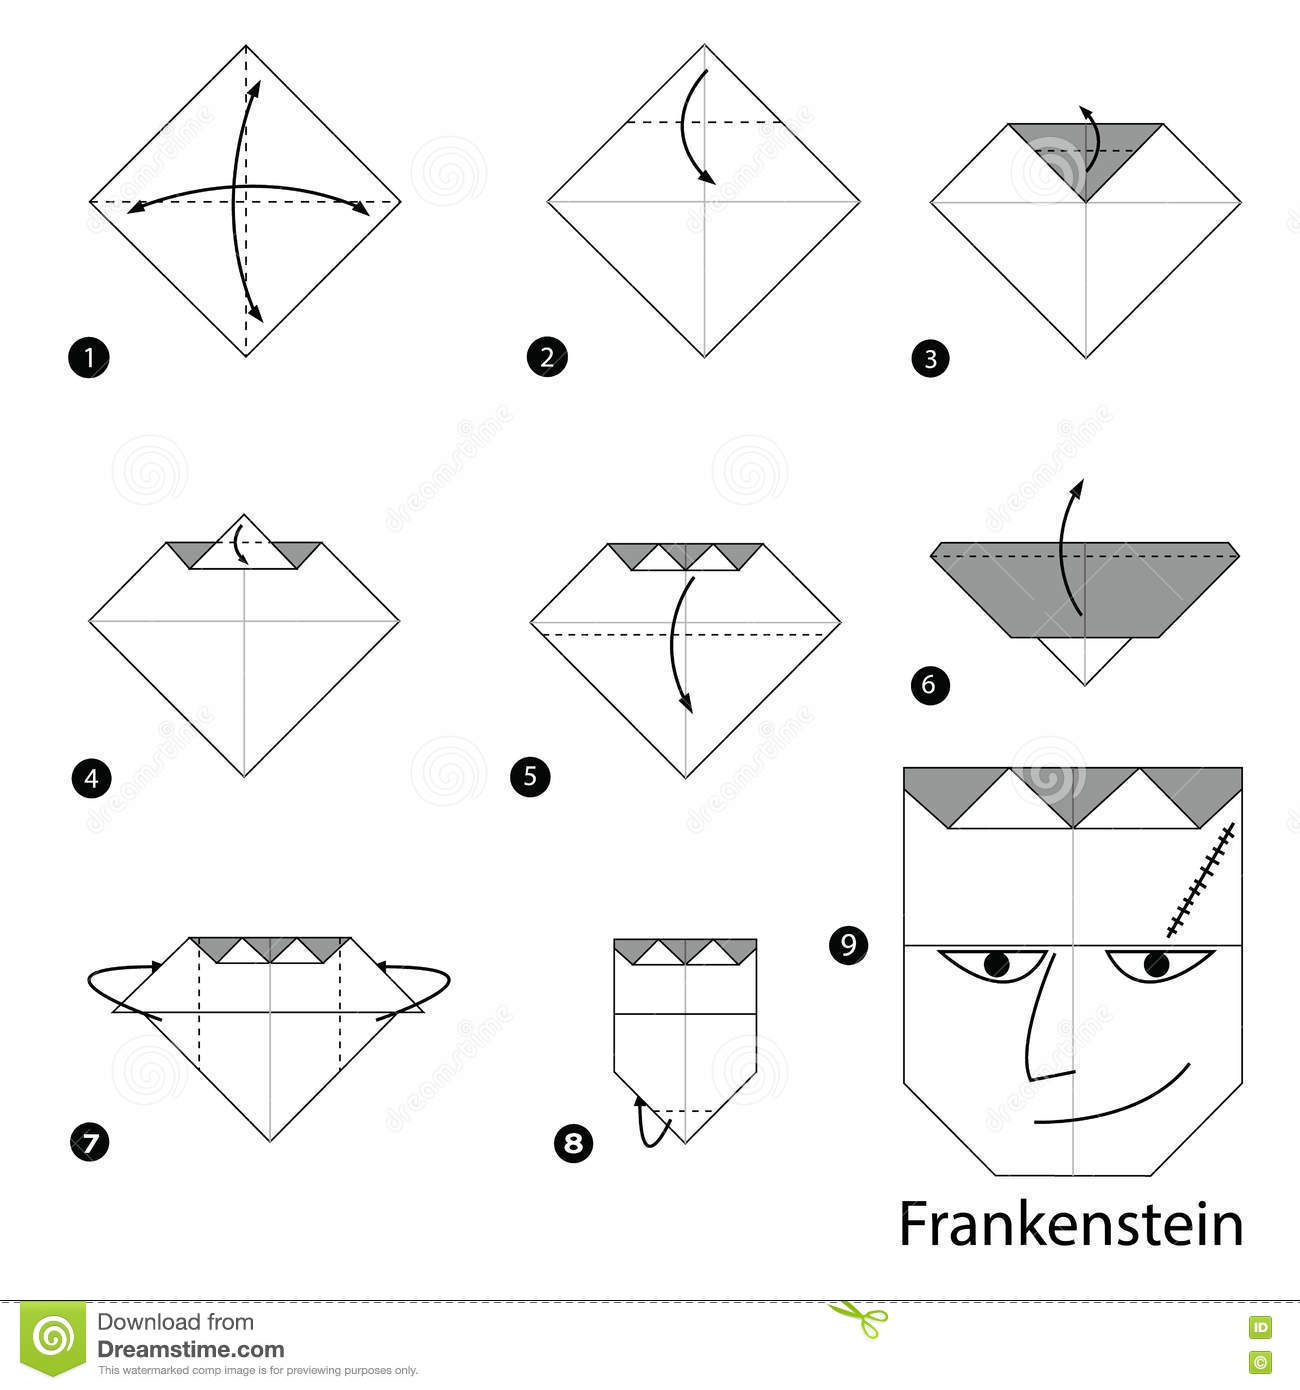 Step By Step Instructions How To Make Origami Frankenstein